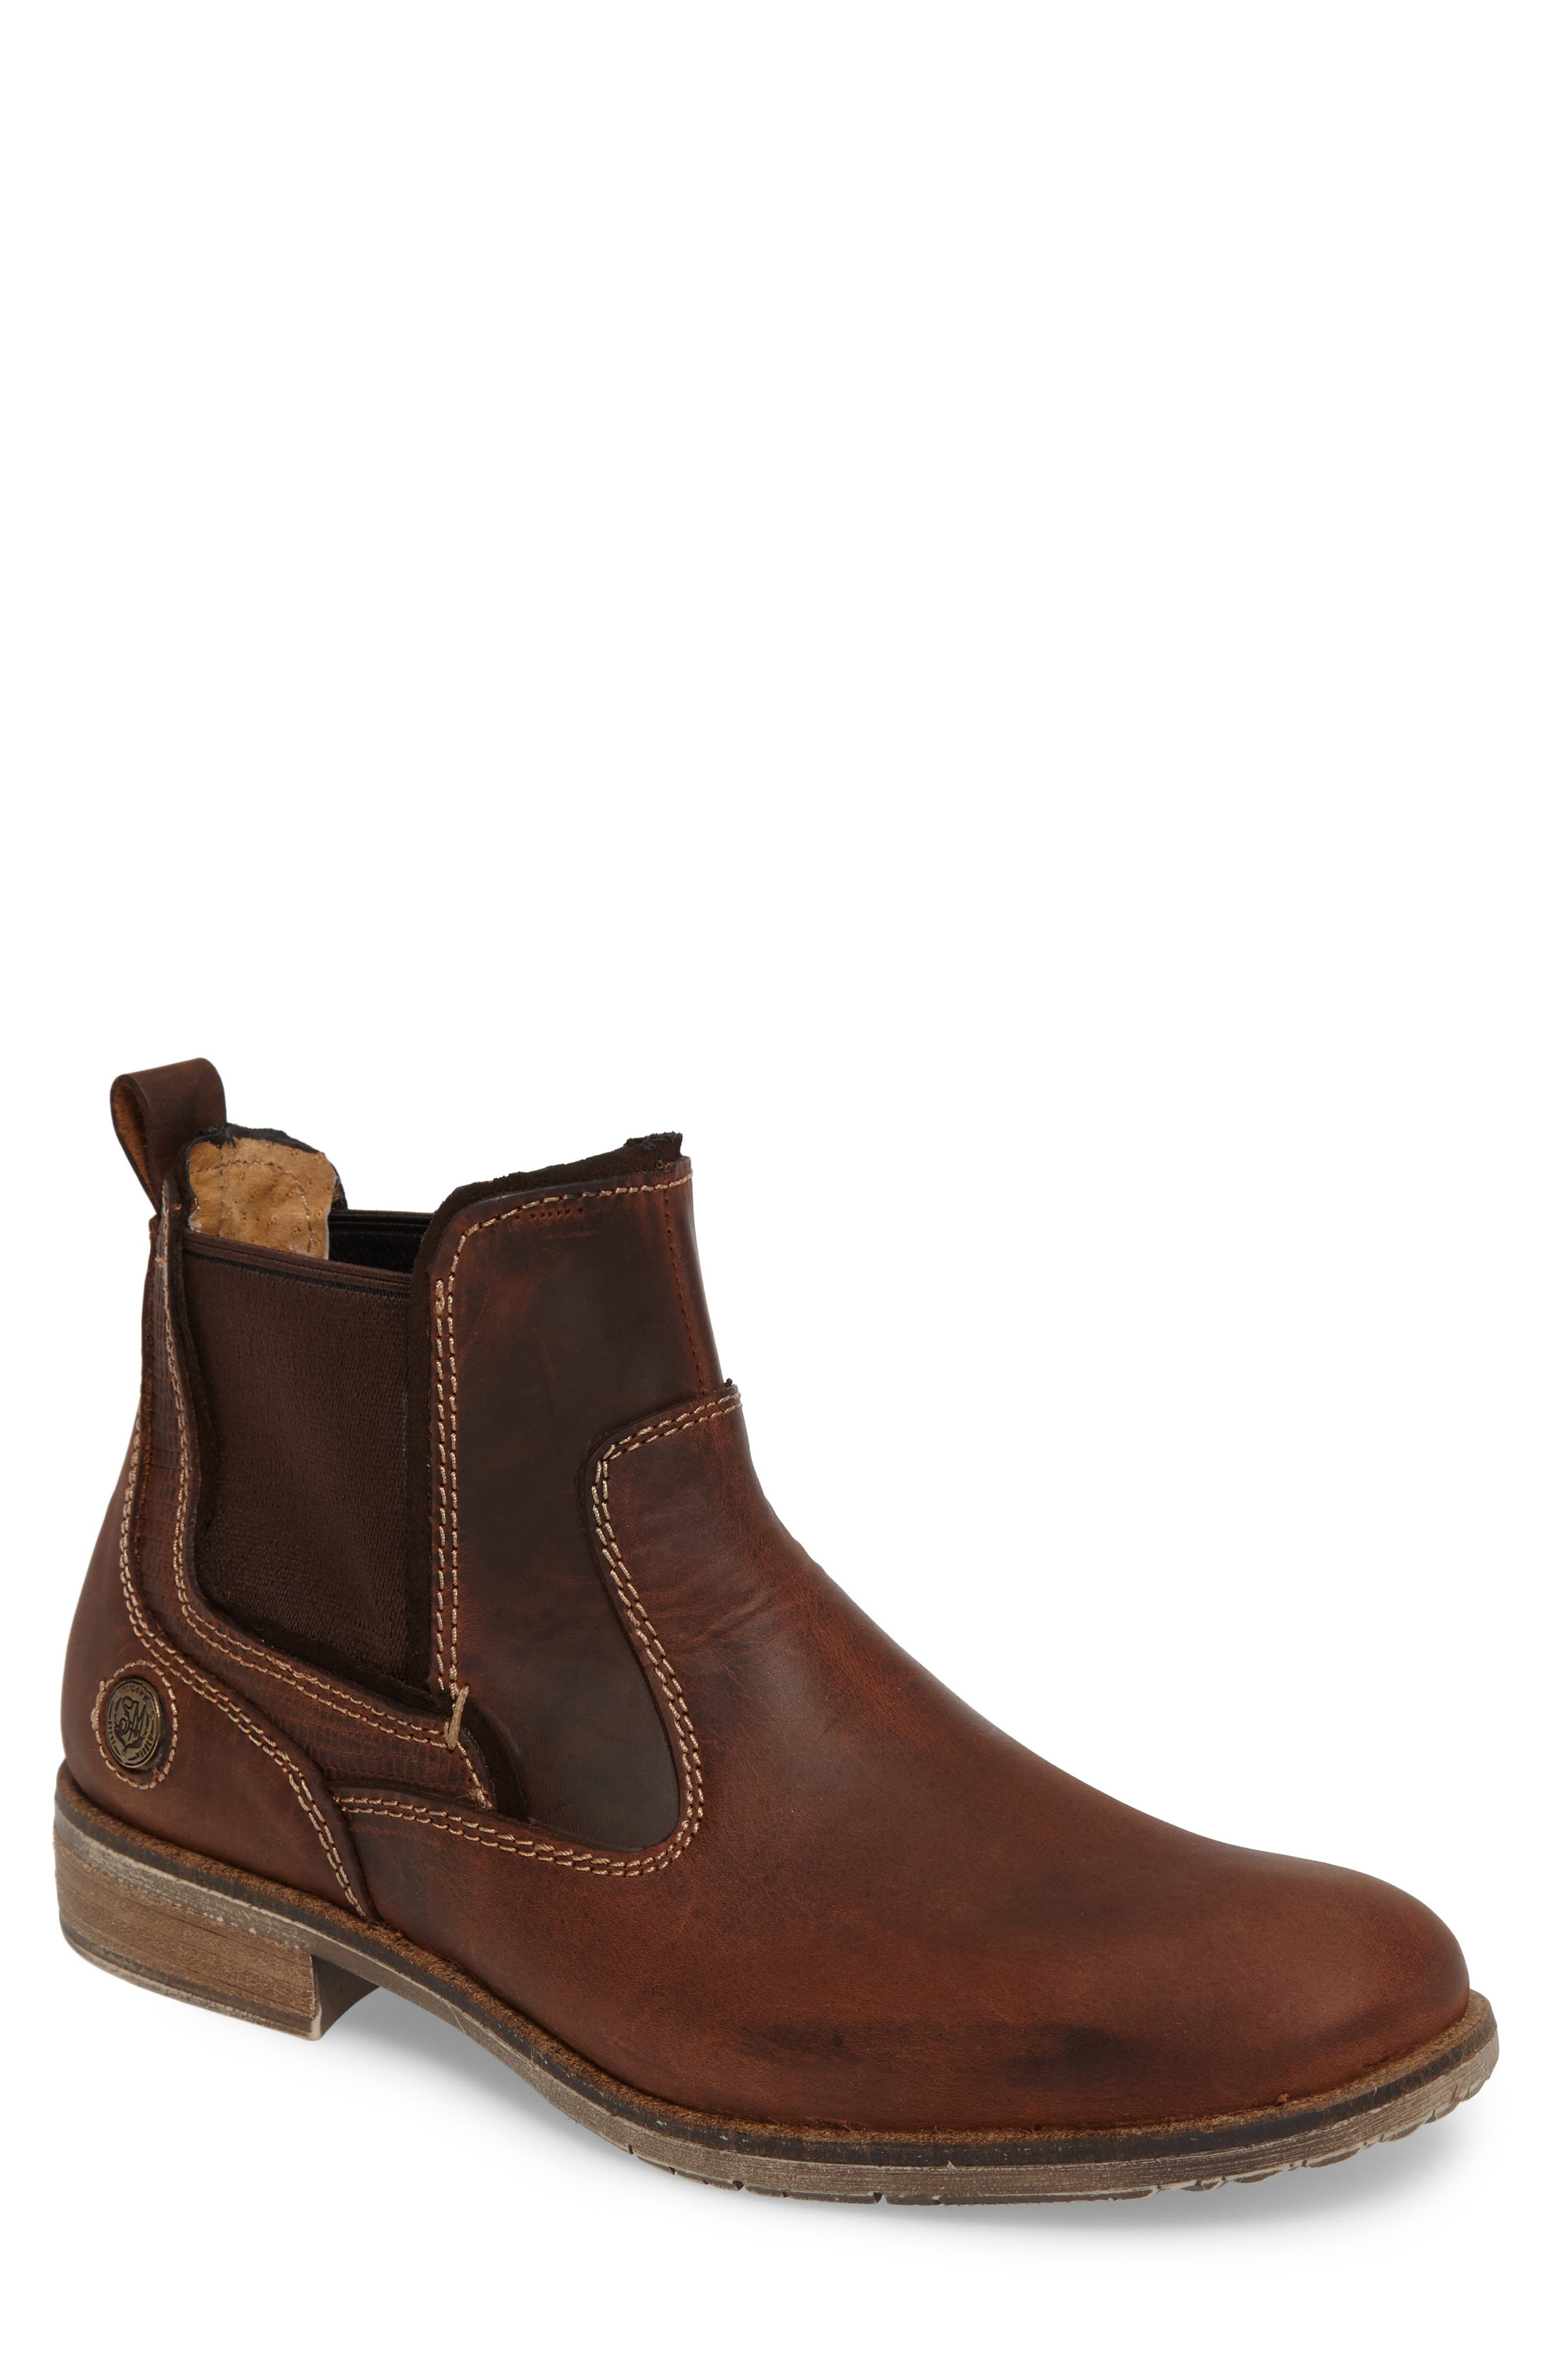 Main Image - Steve Madden Nockdown Chelsea Boot (Men)